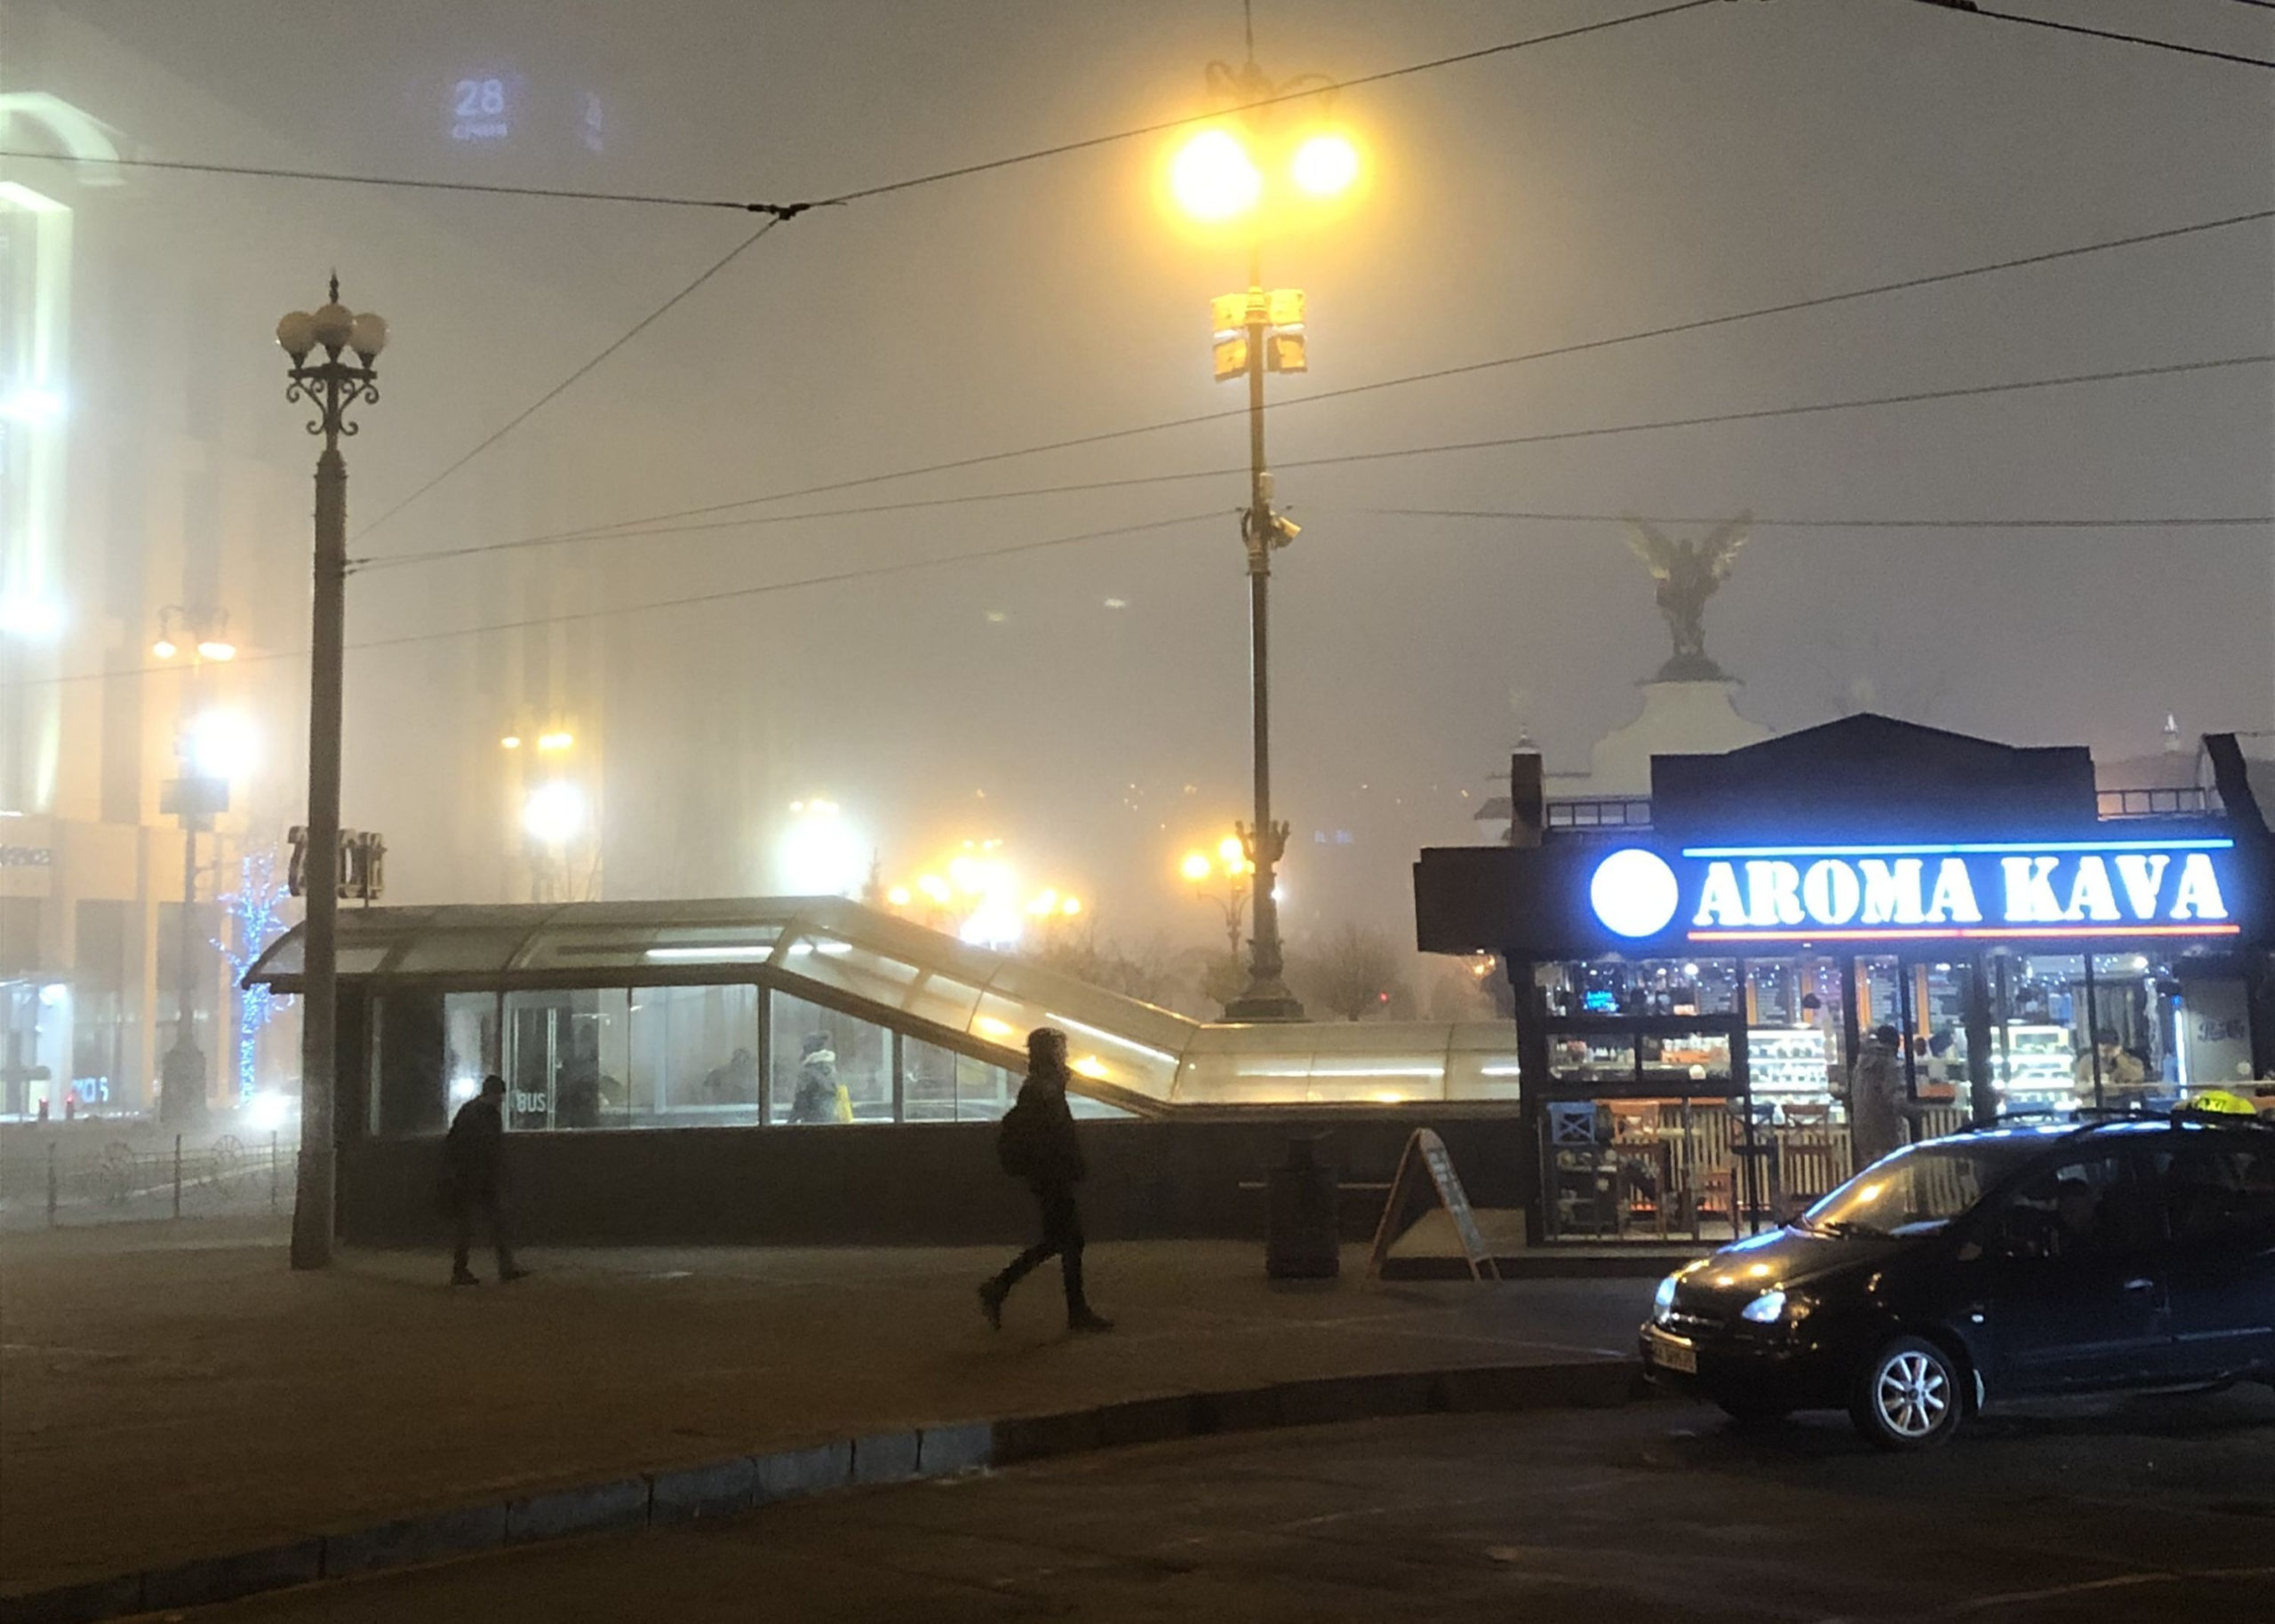 Independence Square (Maidan) Kyiv in the Fog. Photo by Thomas Zeitzoff.